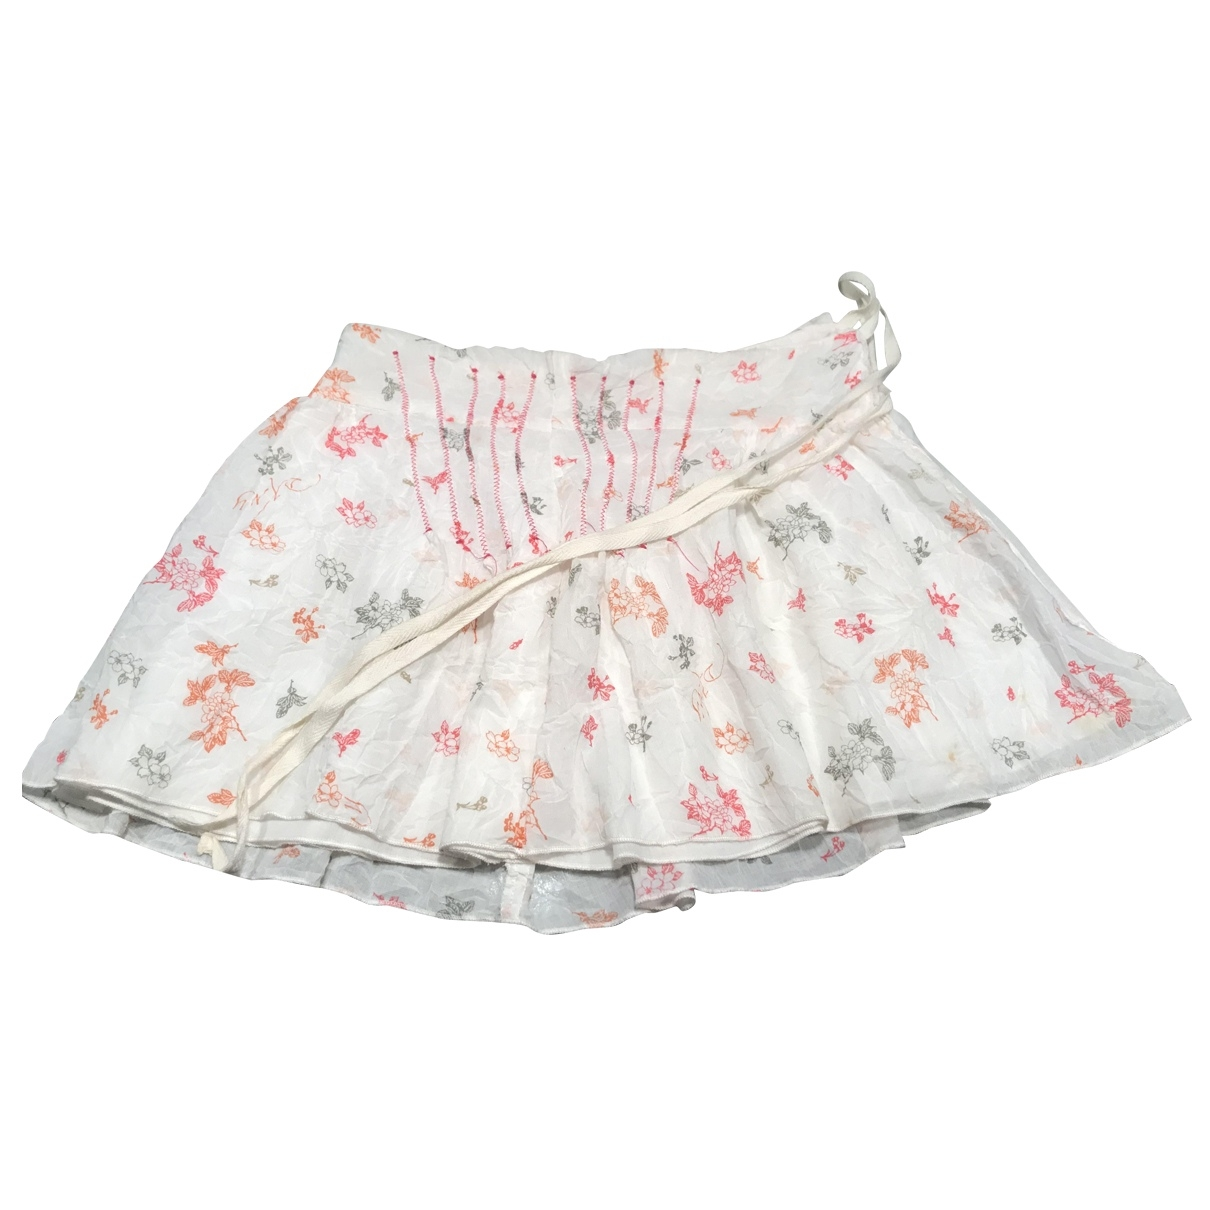 Dkny \N White Cotton skirt for Kids 6 years - up to 114cm FR